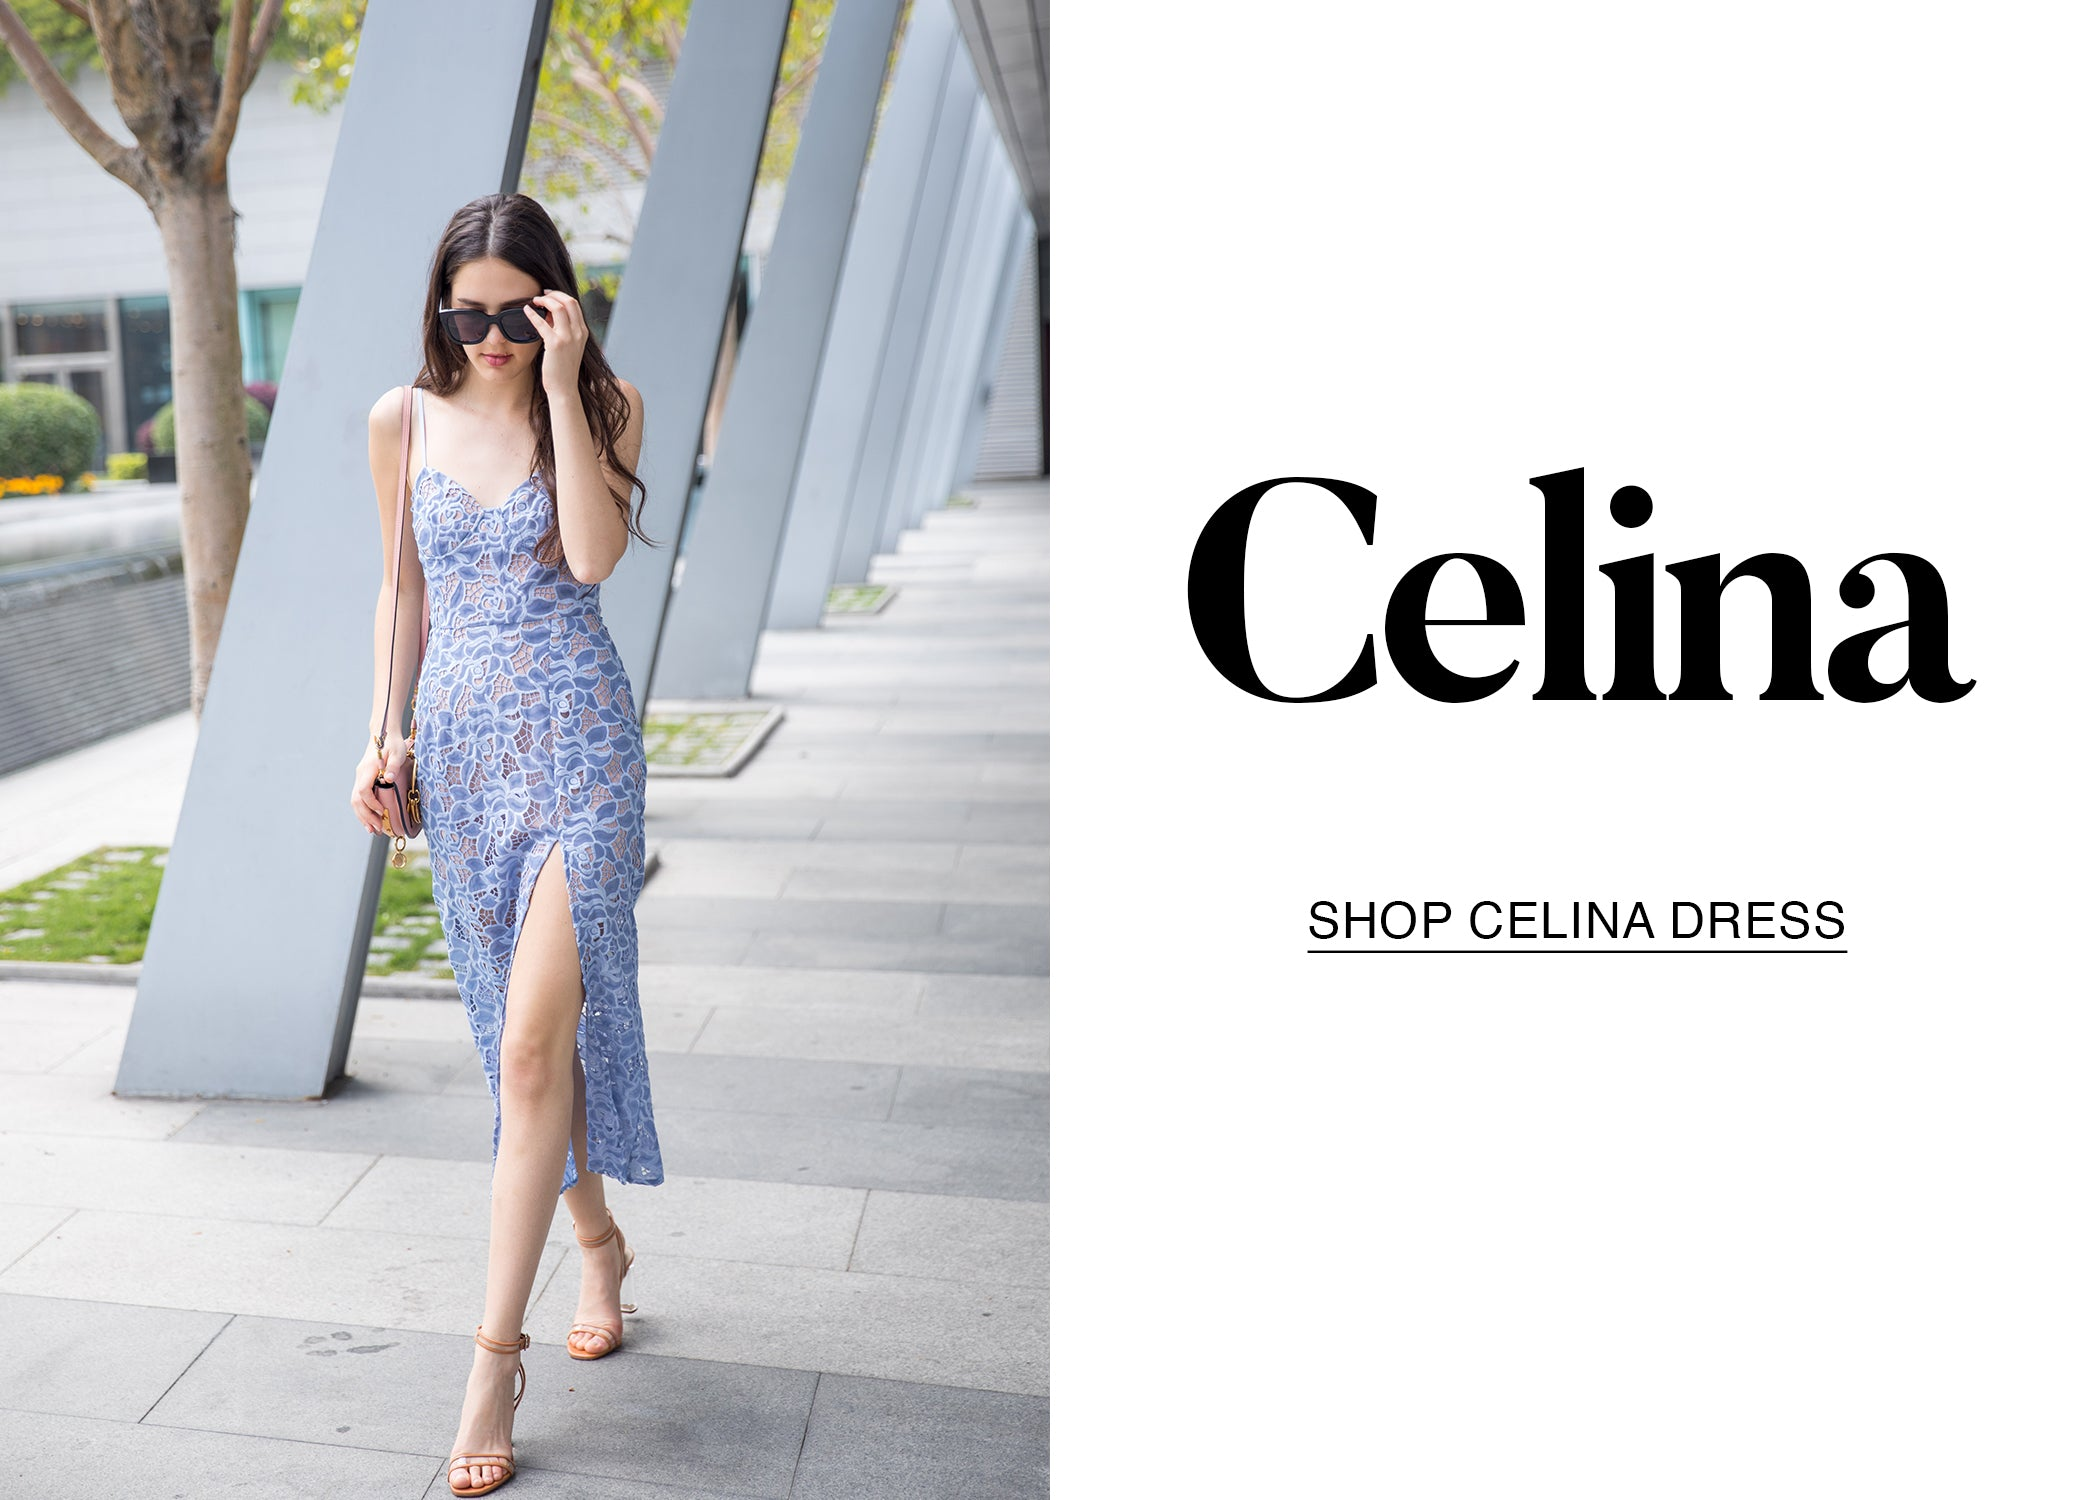 Celina Blue Lace Bustier Cocktail Dress